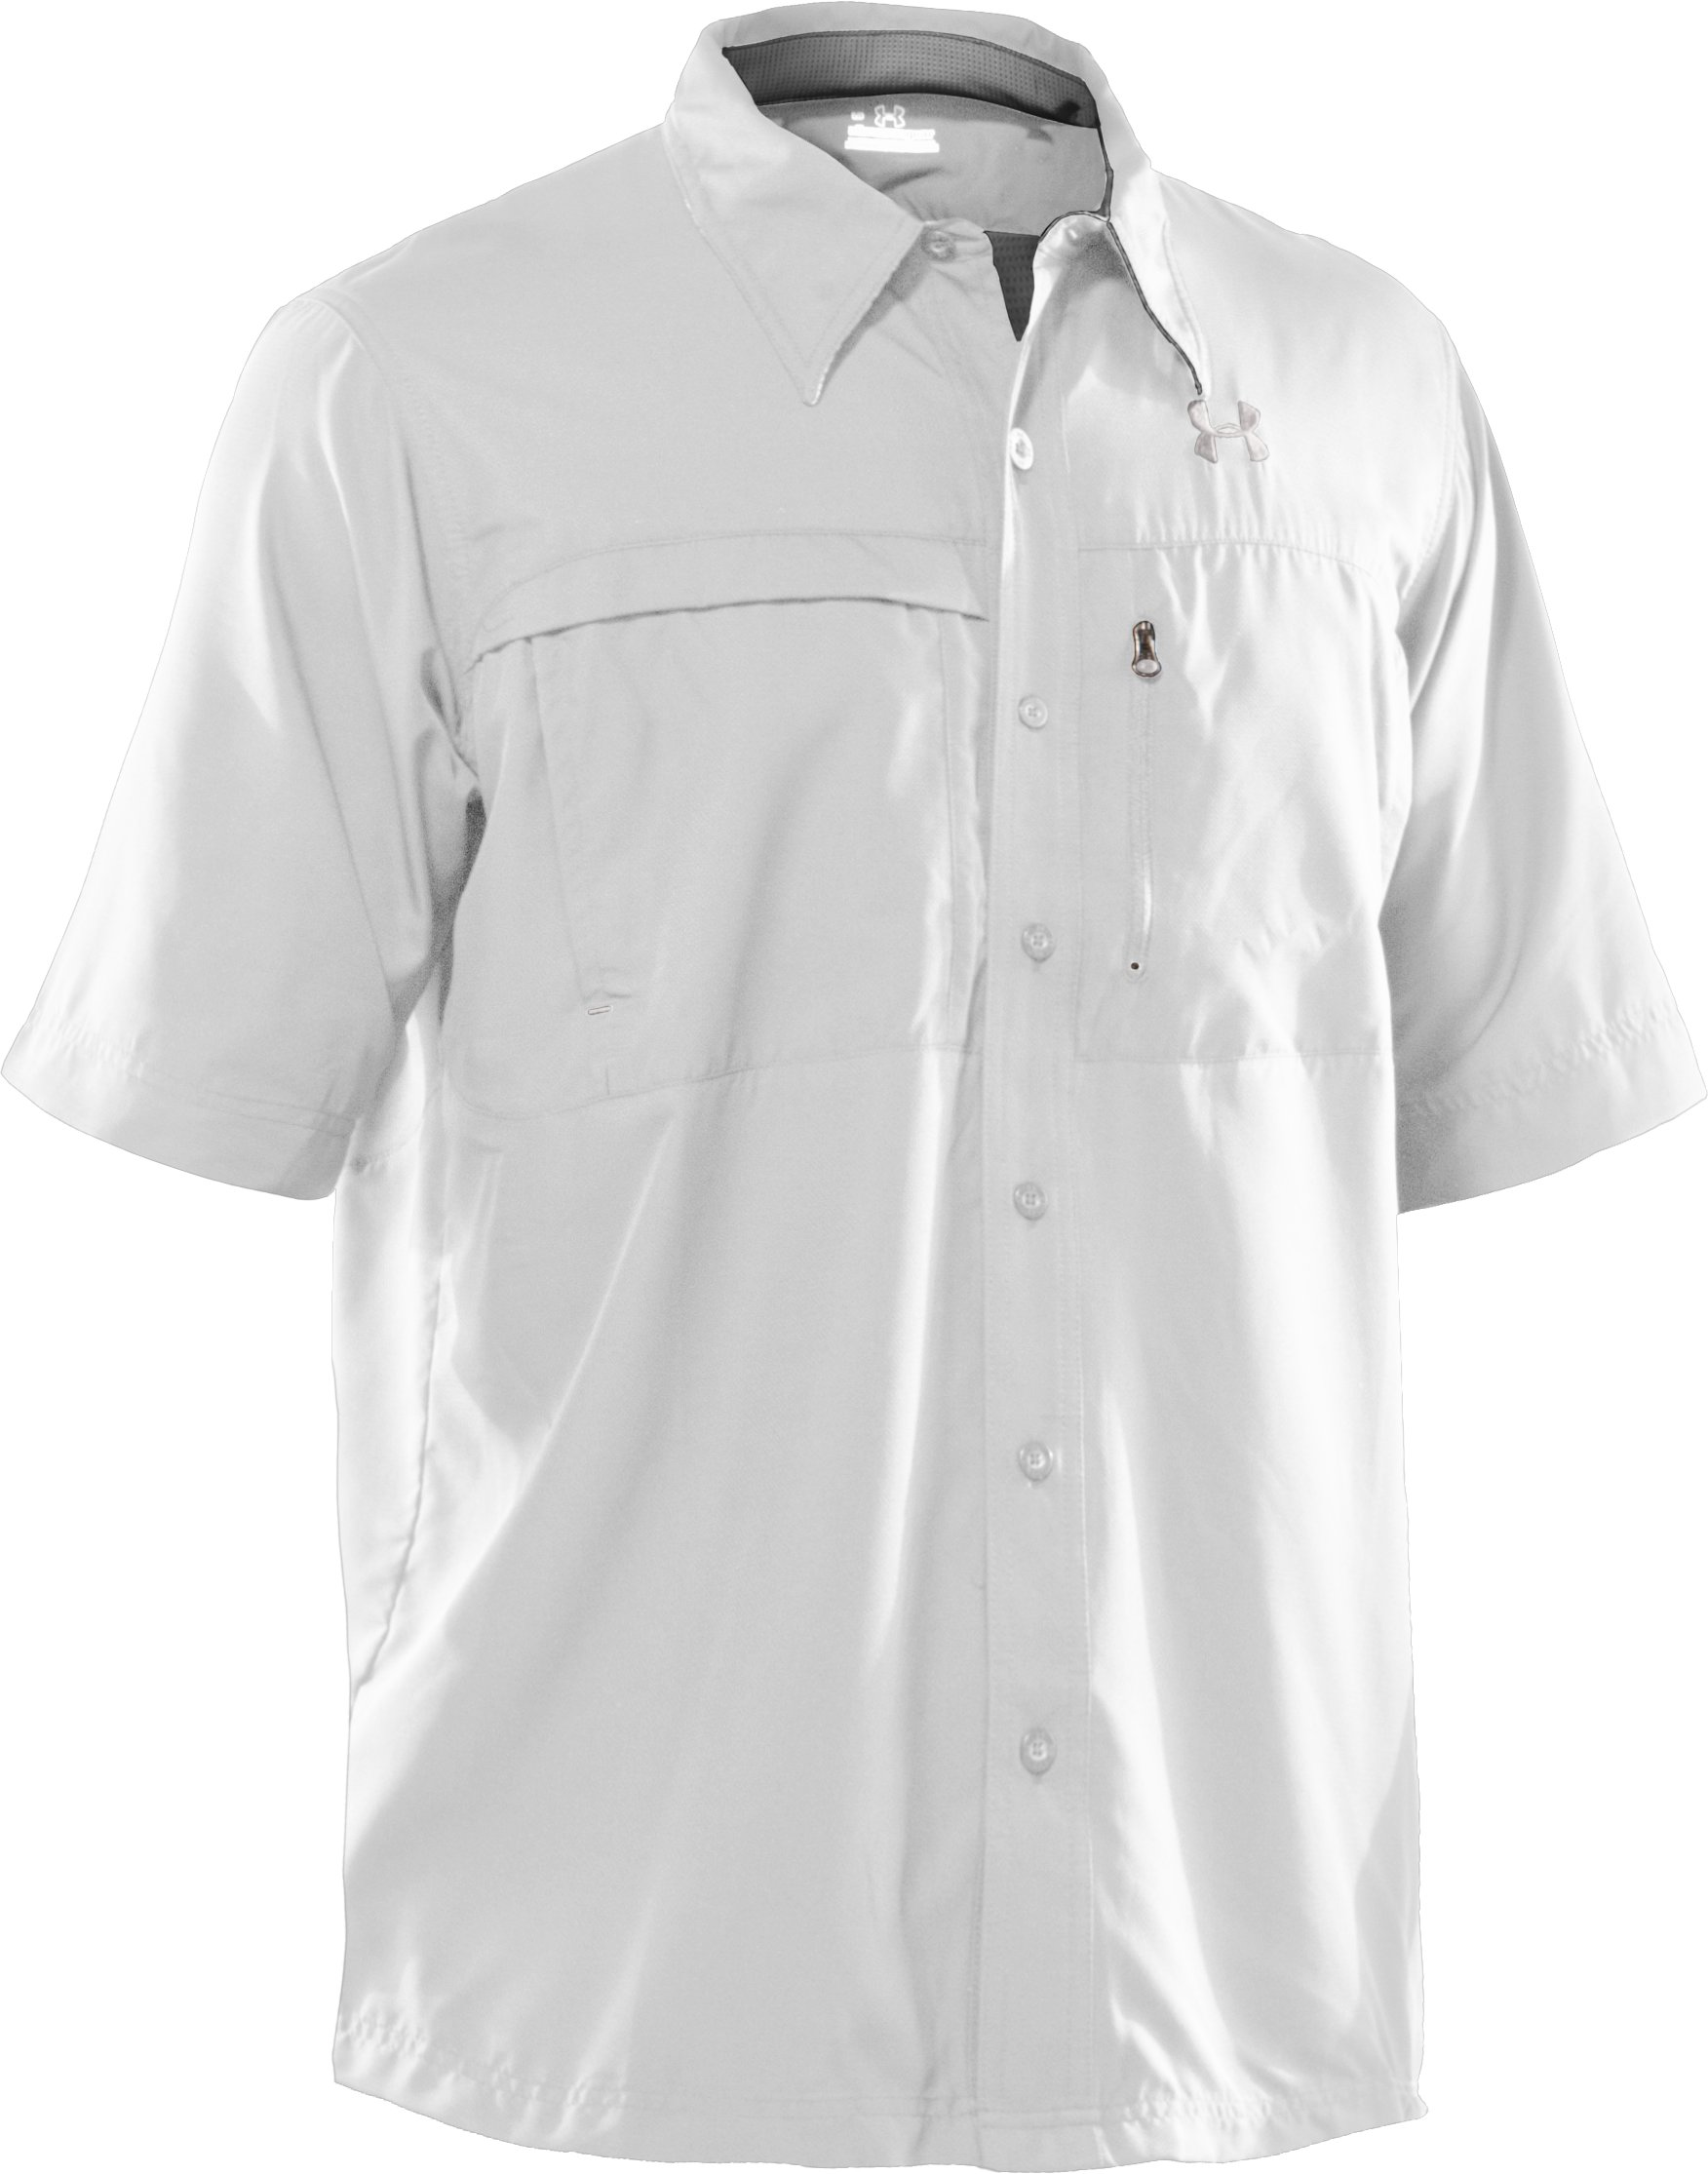 Men's Flats Guide Short Sleeve Shirt, White